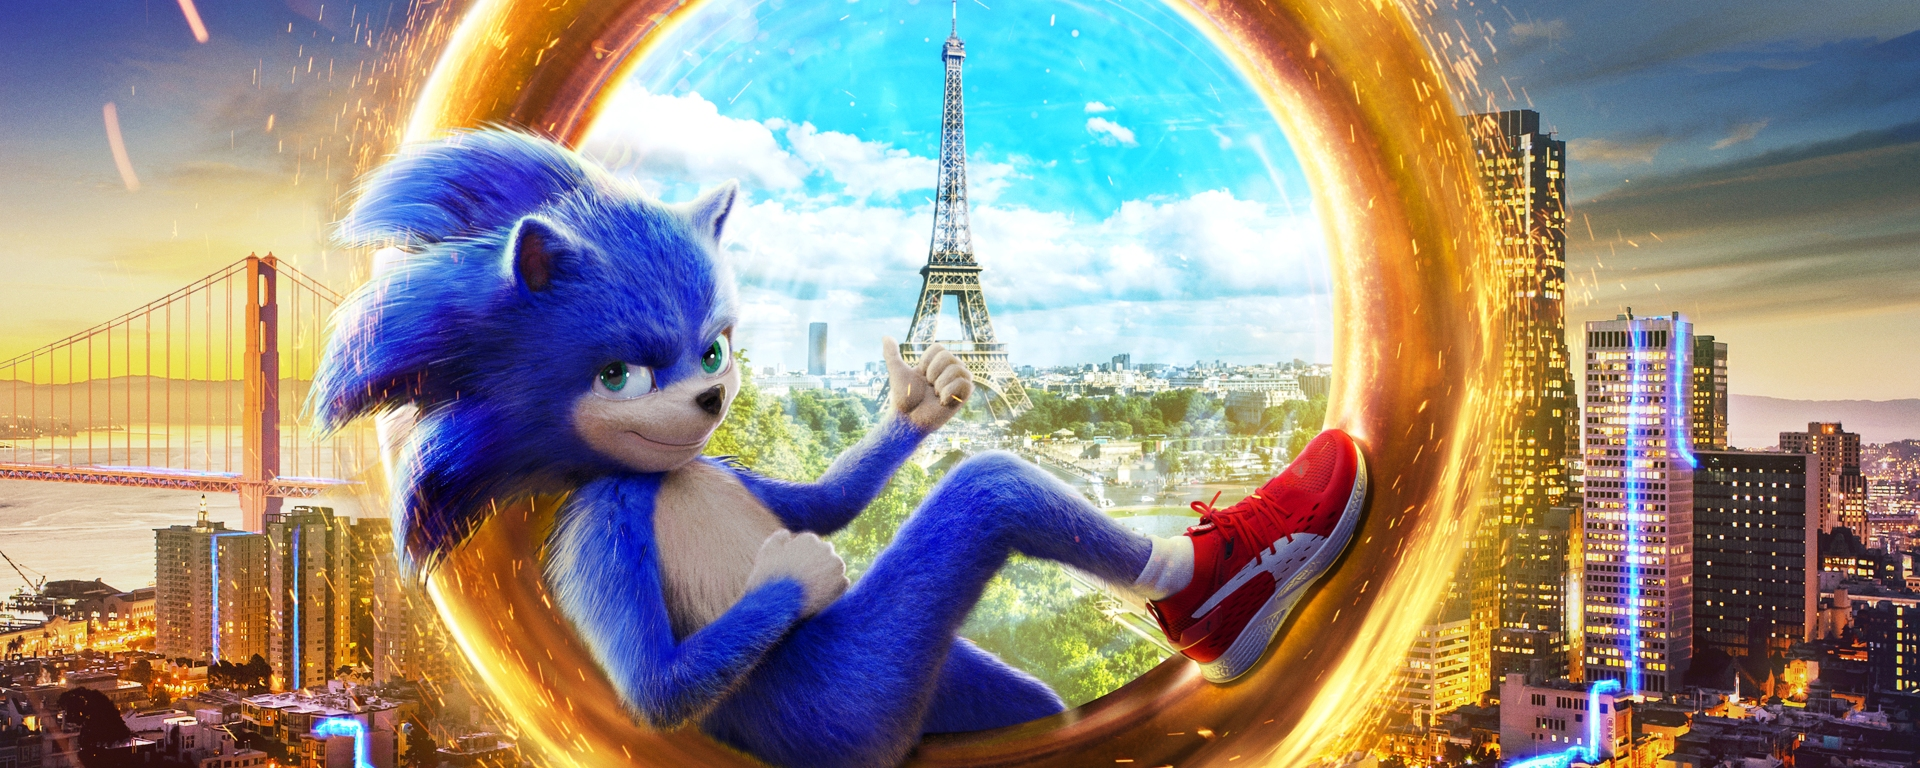 A Face Lift Won T Save Sonic The Hedgehog Screenhub Entertainment Screenhub Entertainment